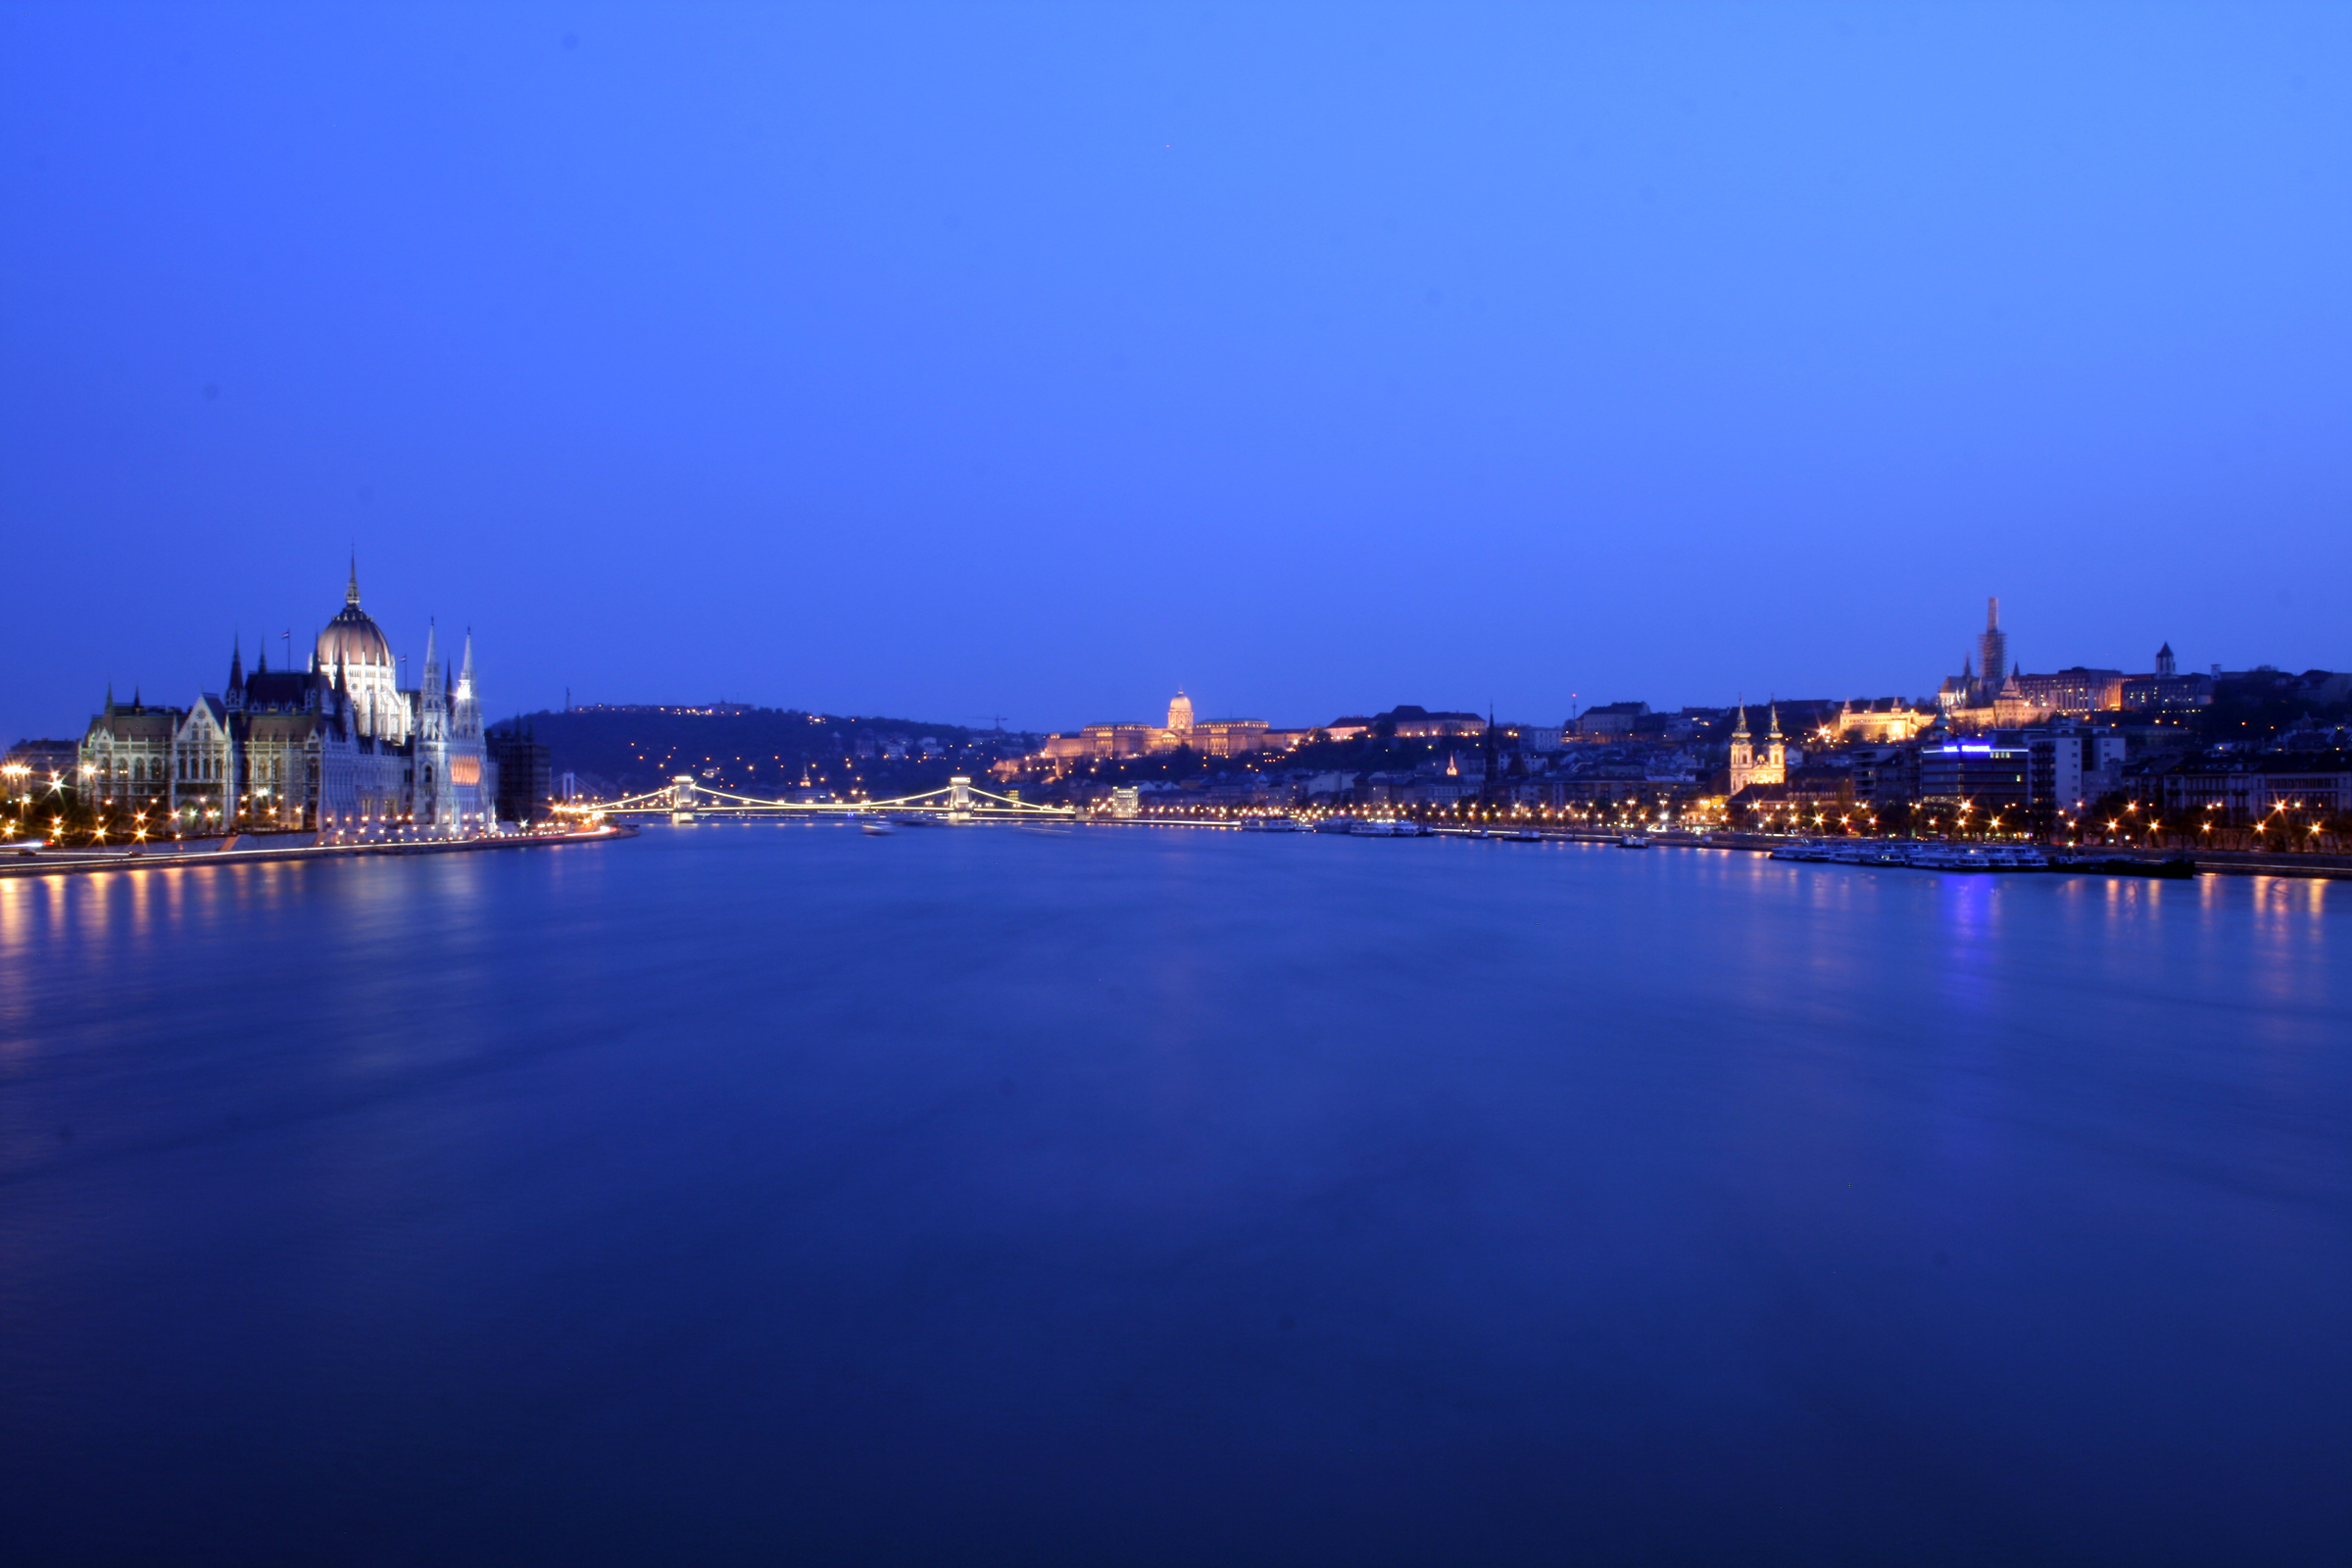 http://upload.wikimedia.org/wikipedia/commons/c/cb/Budapest_Danube_panorama_2.jpg